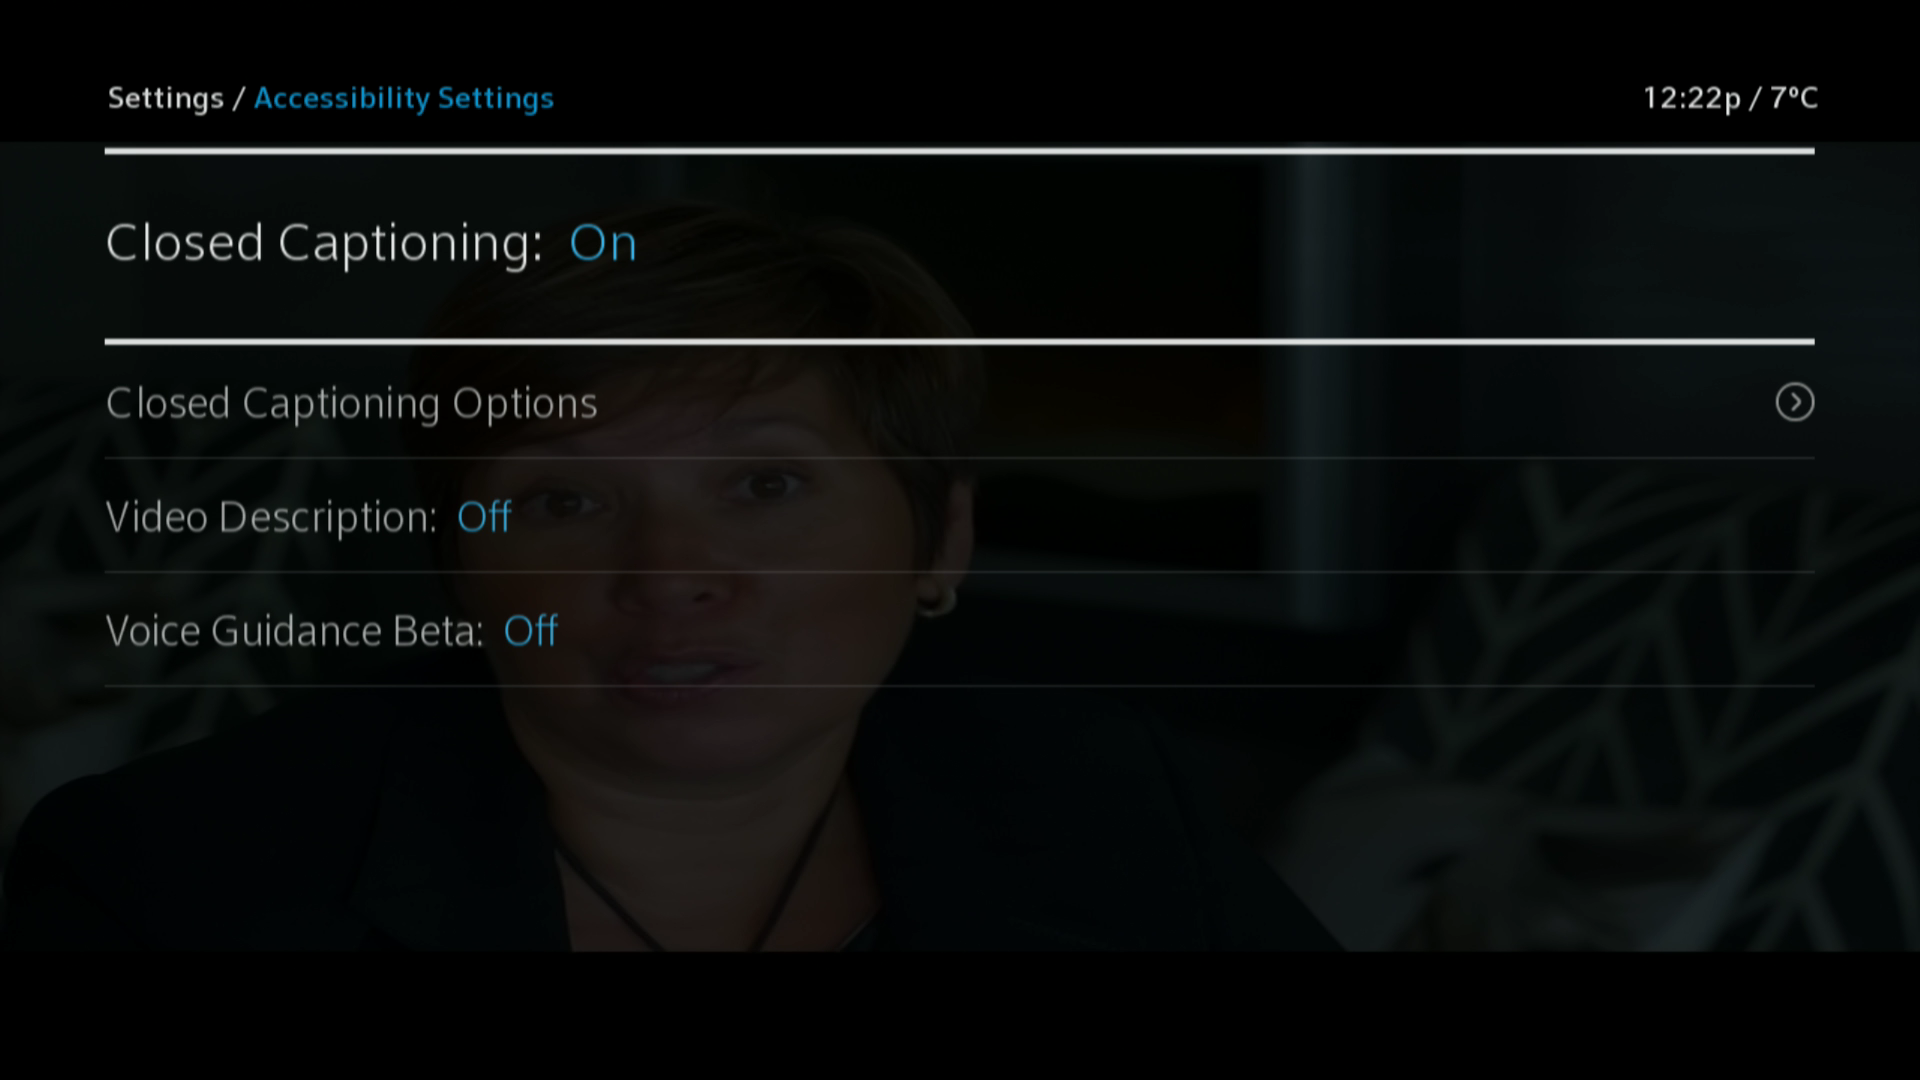 How to enable/disable Closed Captioning on your Shaw TV Box